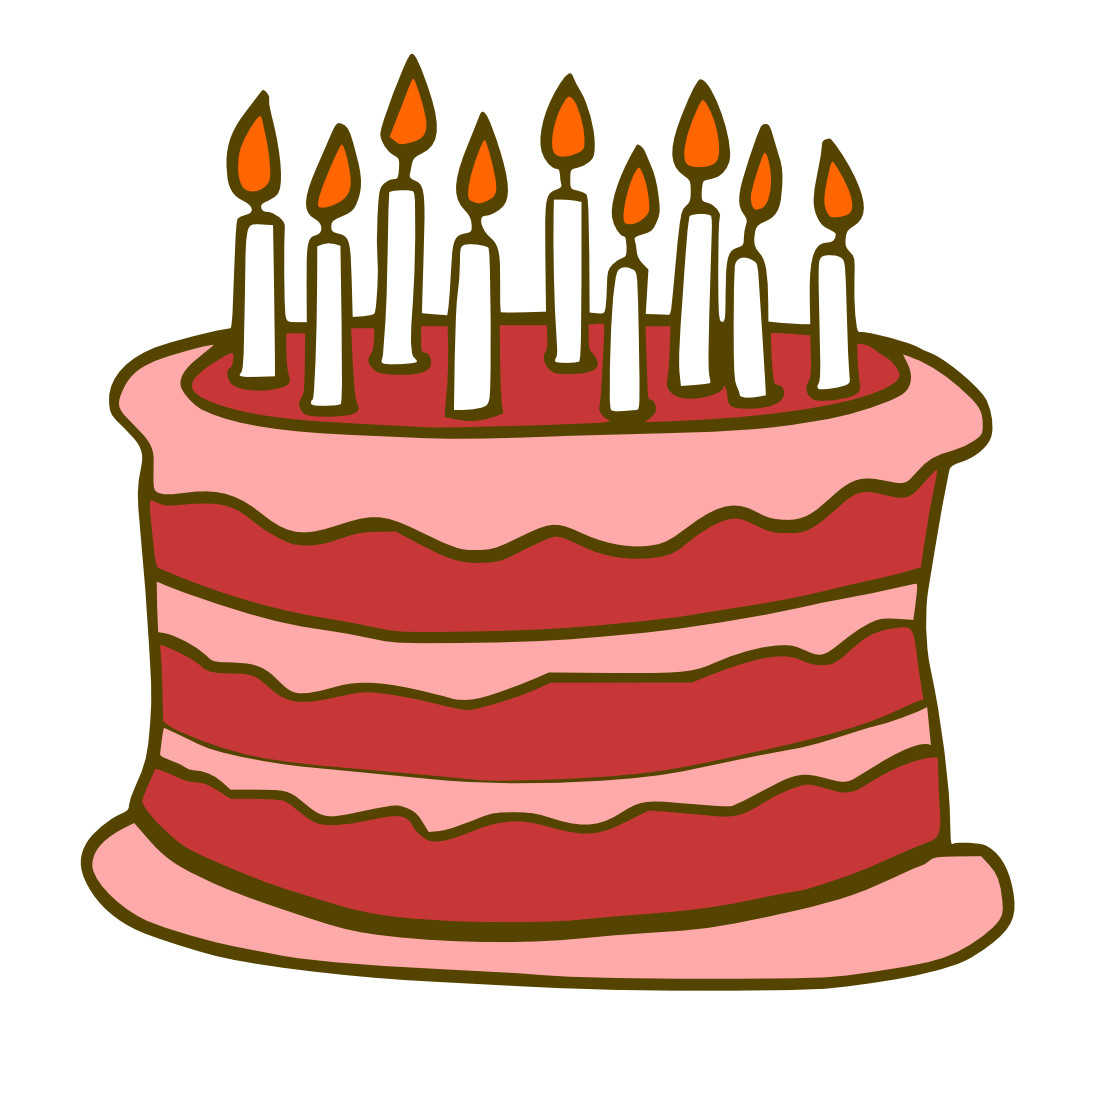 Best ideas about Cartoon Birthday Cake . Save or Pin Free Birthday Cake Cartoon Download Free Clip Art Free Now.